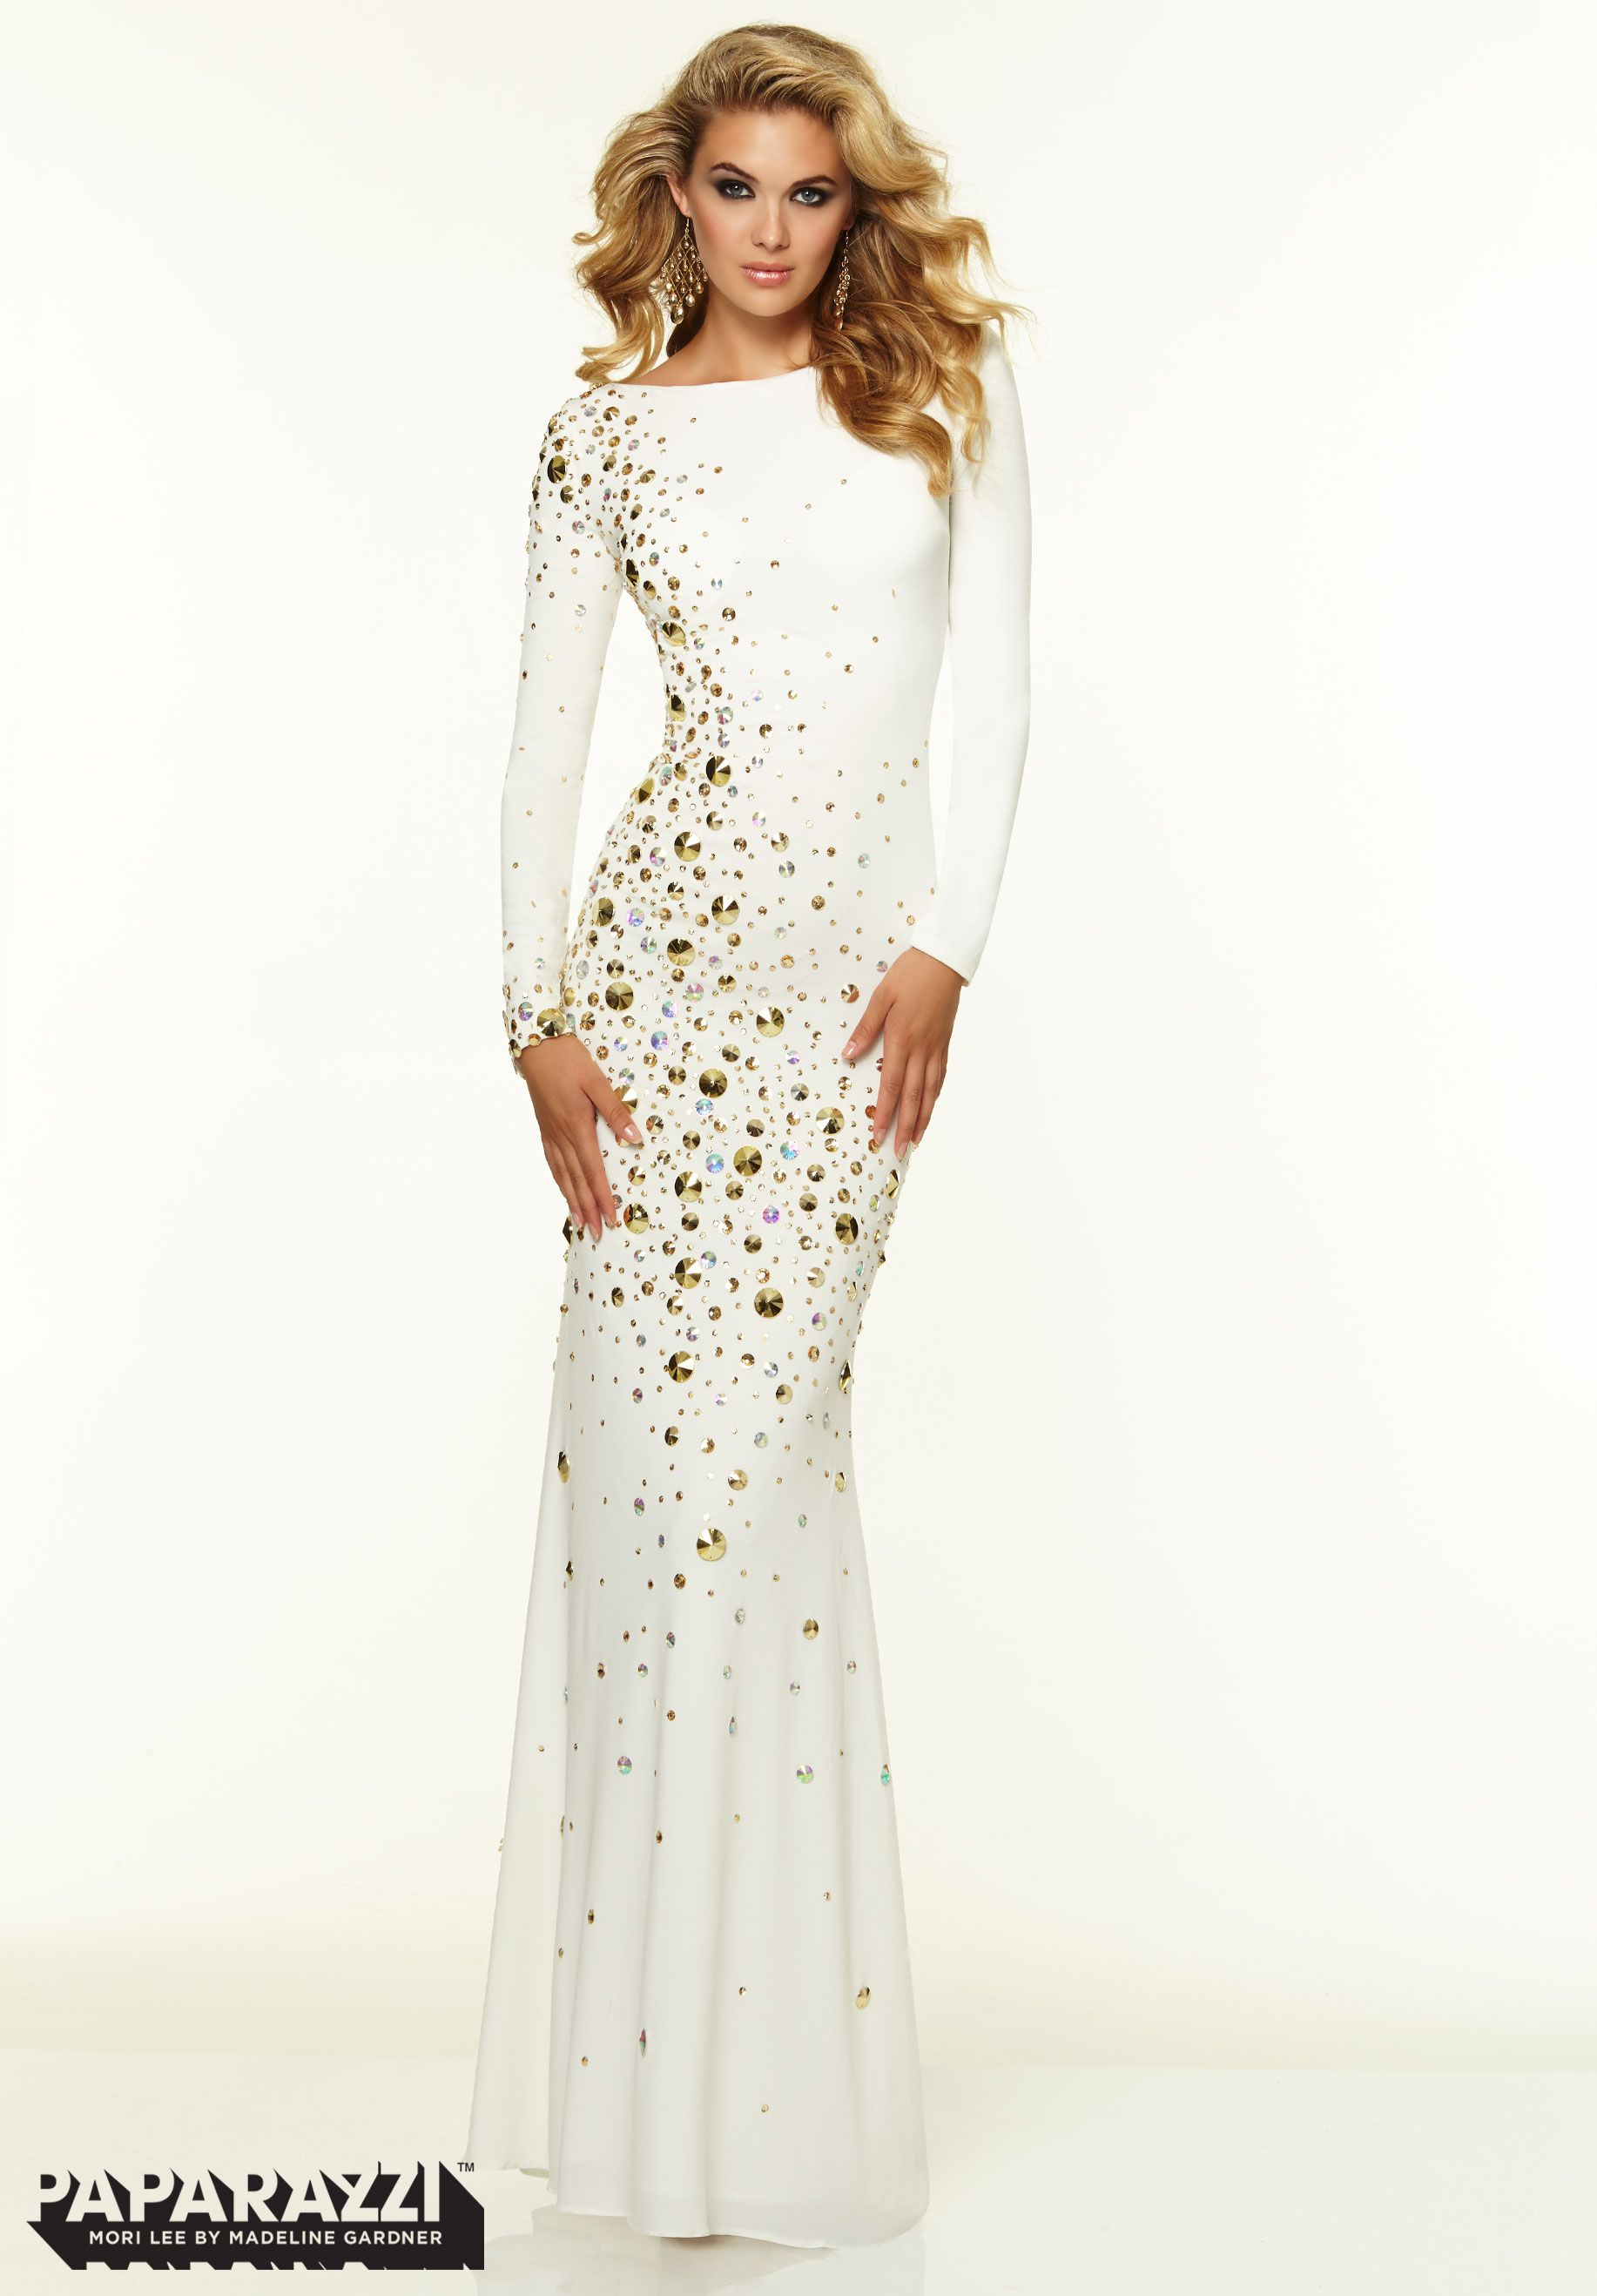 Prom Dresses   Gowns Style 97070  Long Sleeve Backless Studded Jersey  http    772e1162c3a2